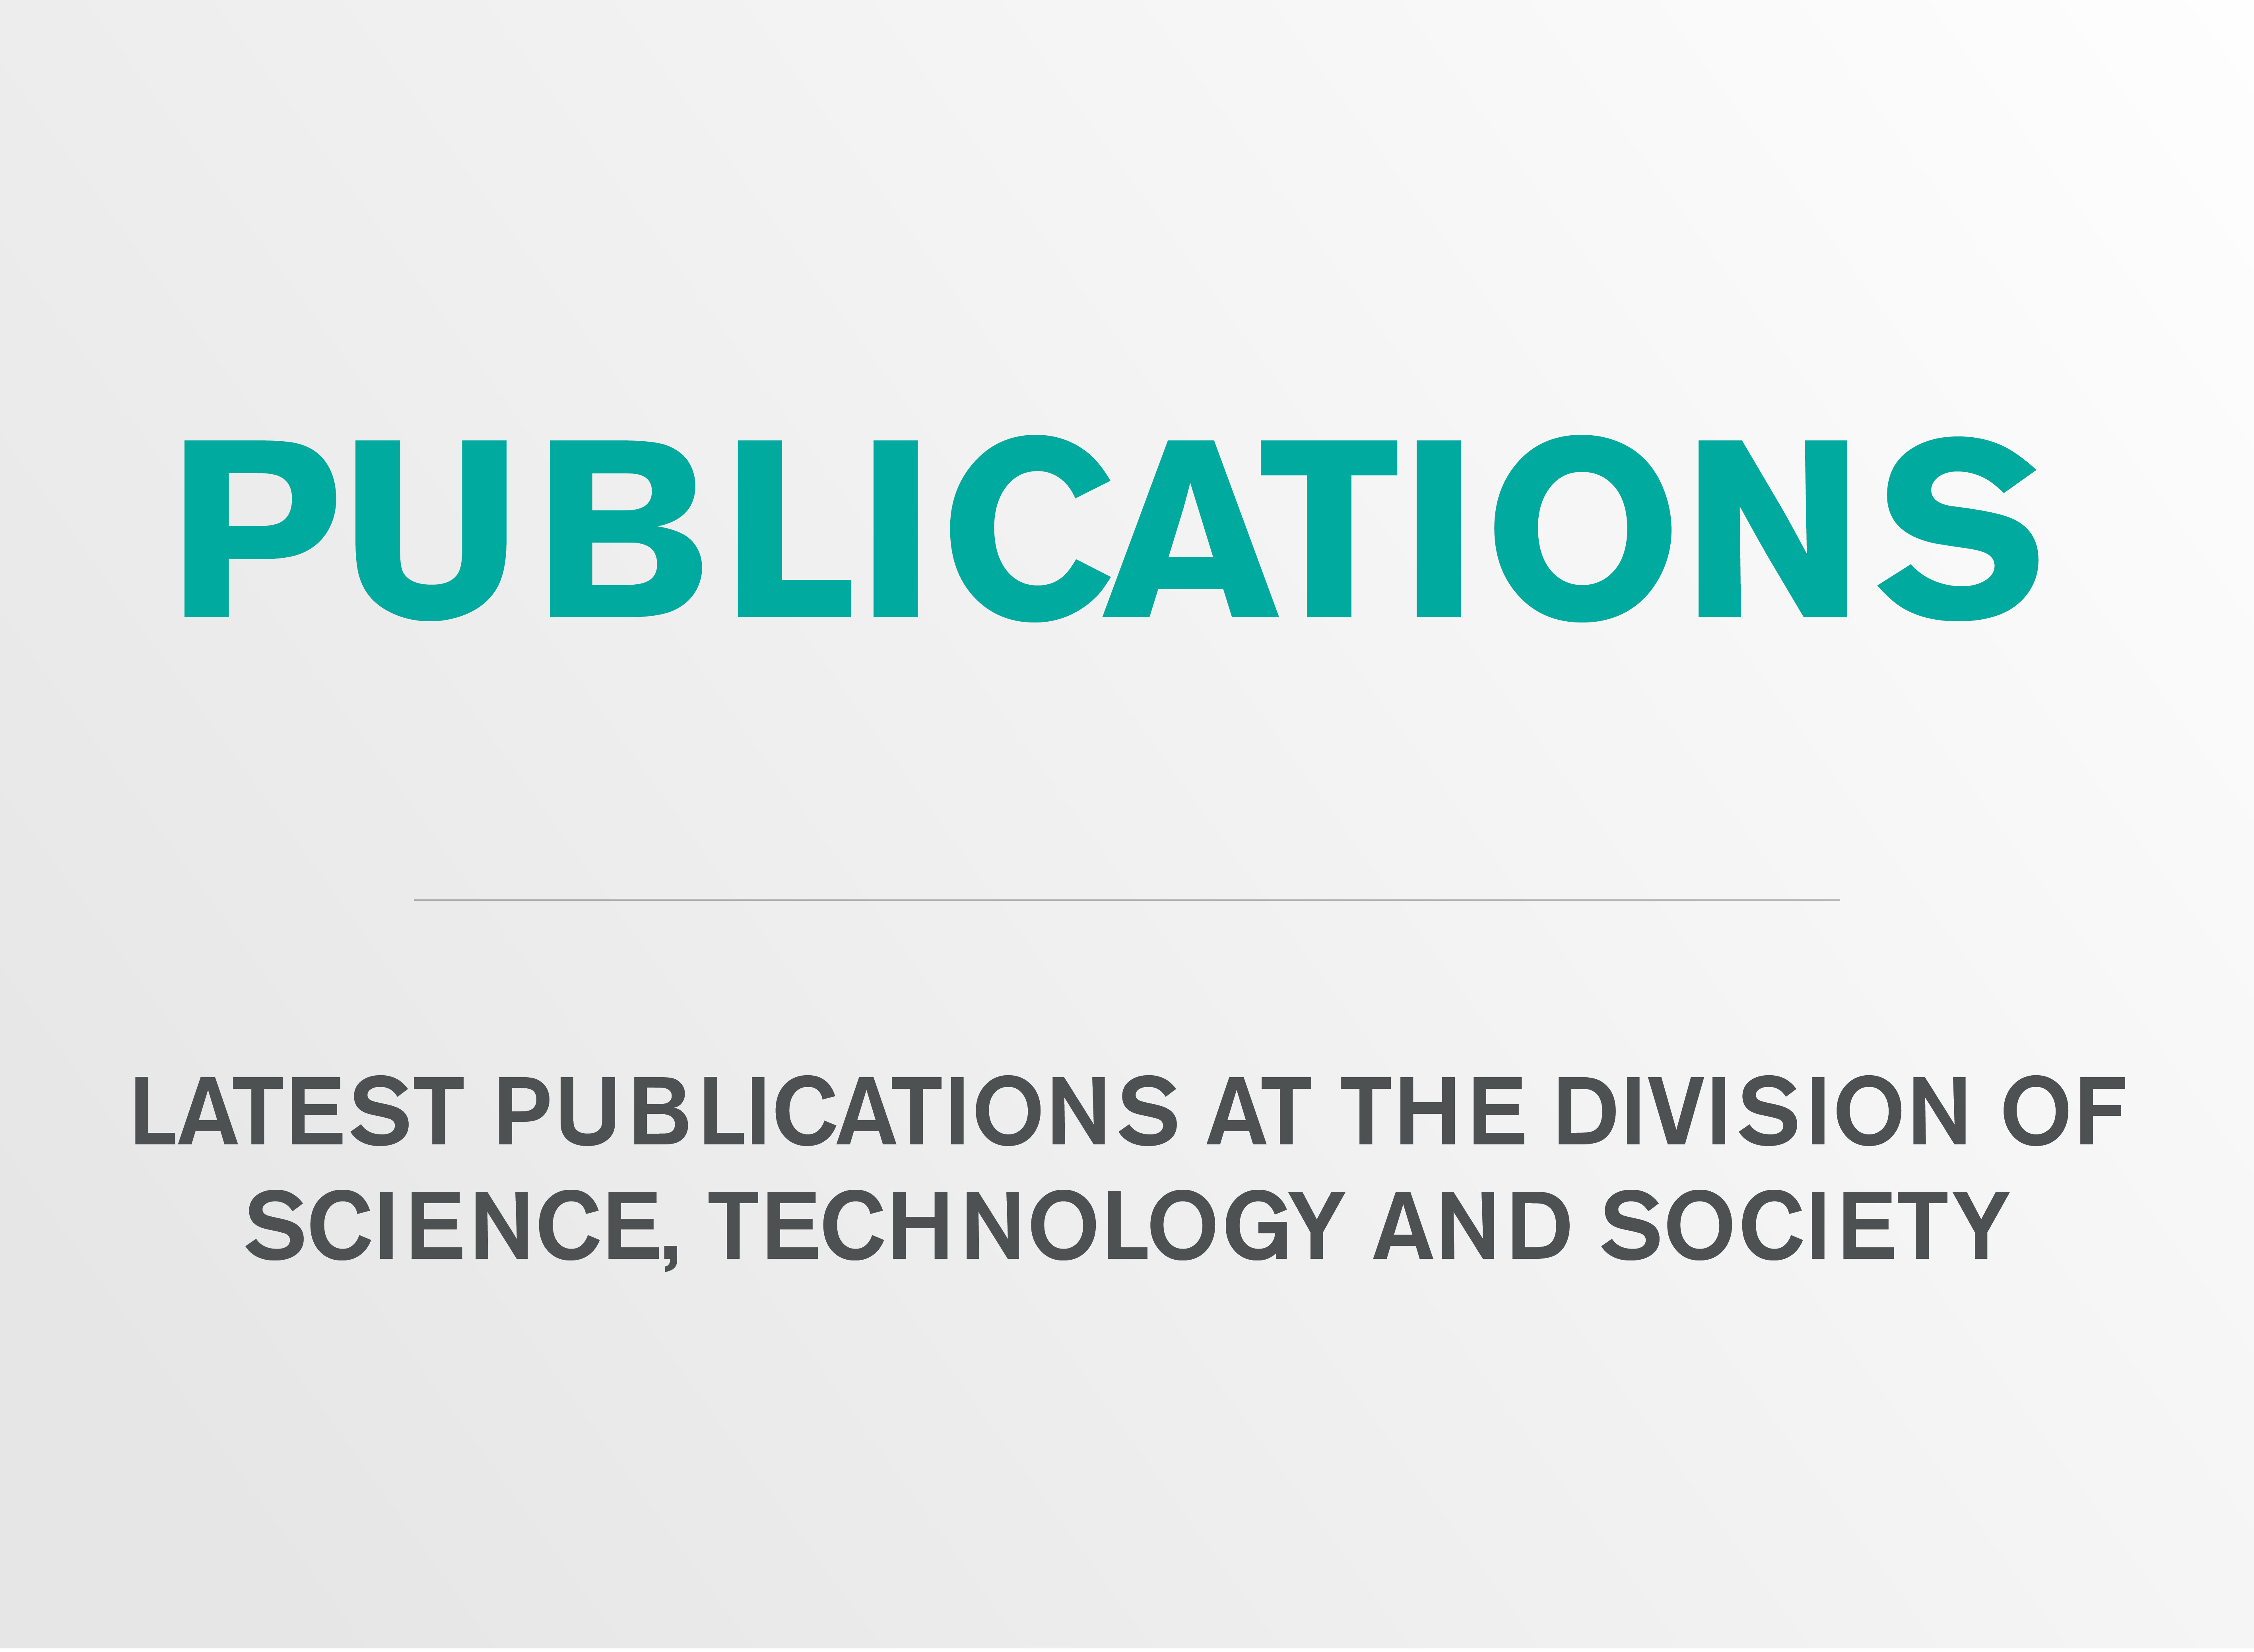 Publications at the division of Science, Technology and Society.